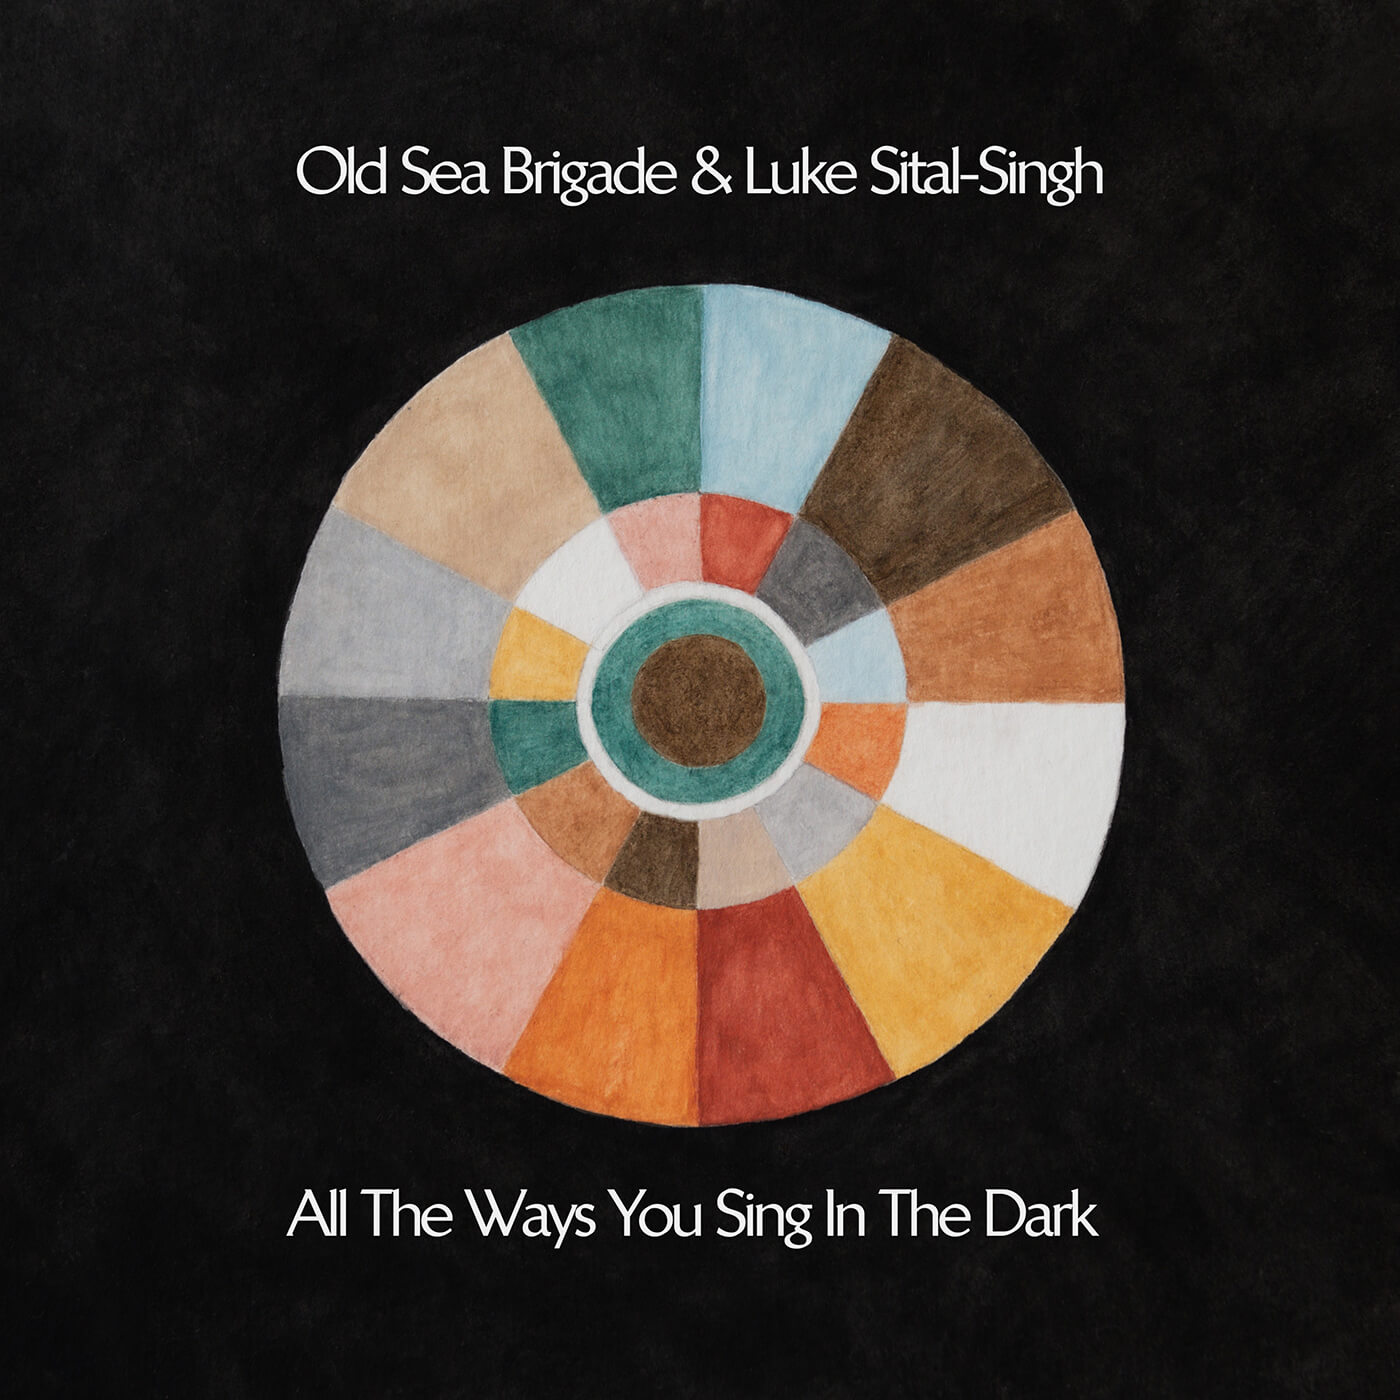 Old Sea Brigade & Luke Sital-Singh All The Ways You Sing In The Dark